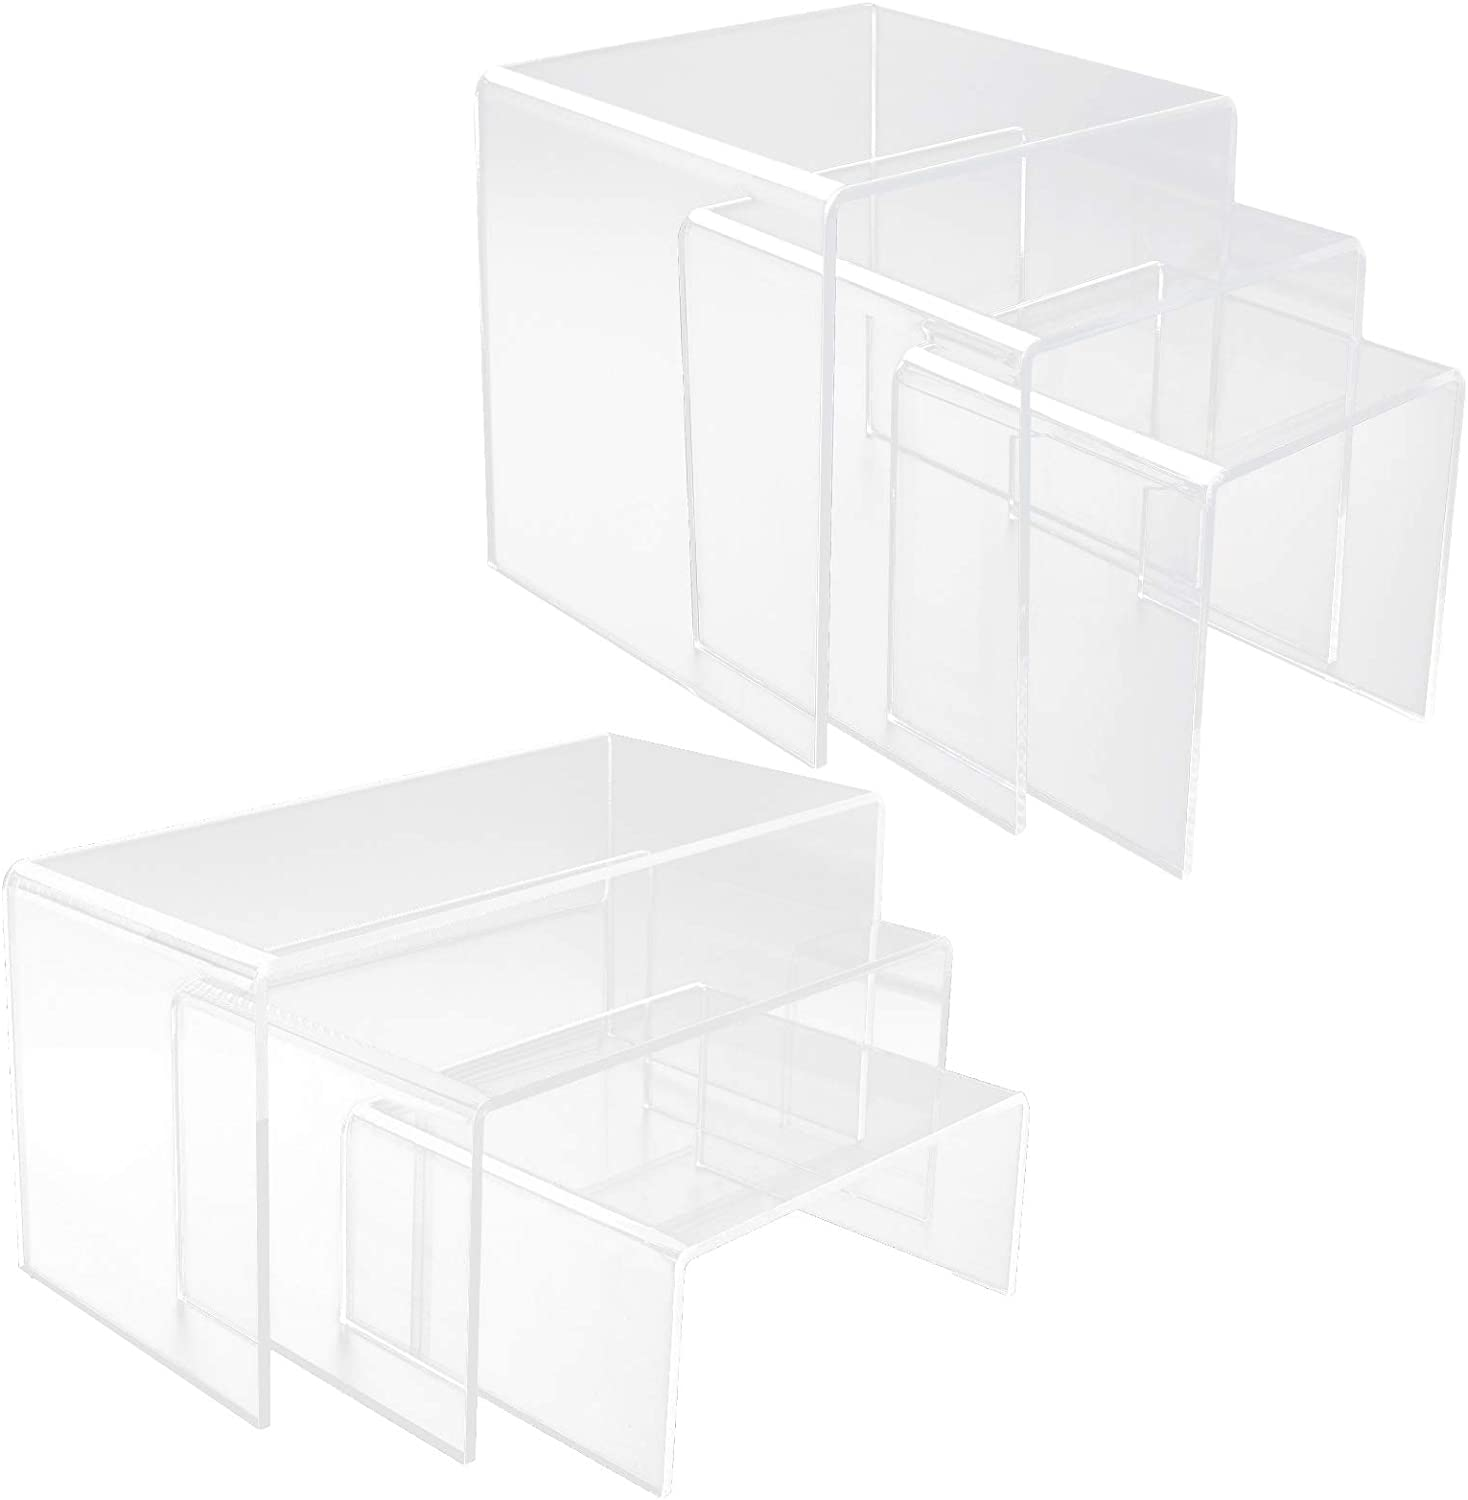 Abuff Acrylic Display Risers, 6 Size Steps Clear Acrylic Display Stand, Retail Displays for Figure Collection Jewelry, Clear Cake Stands Risers for Cup Cake Buffet